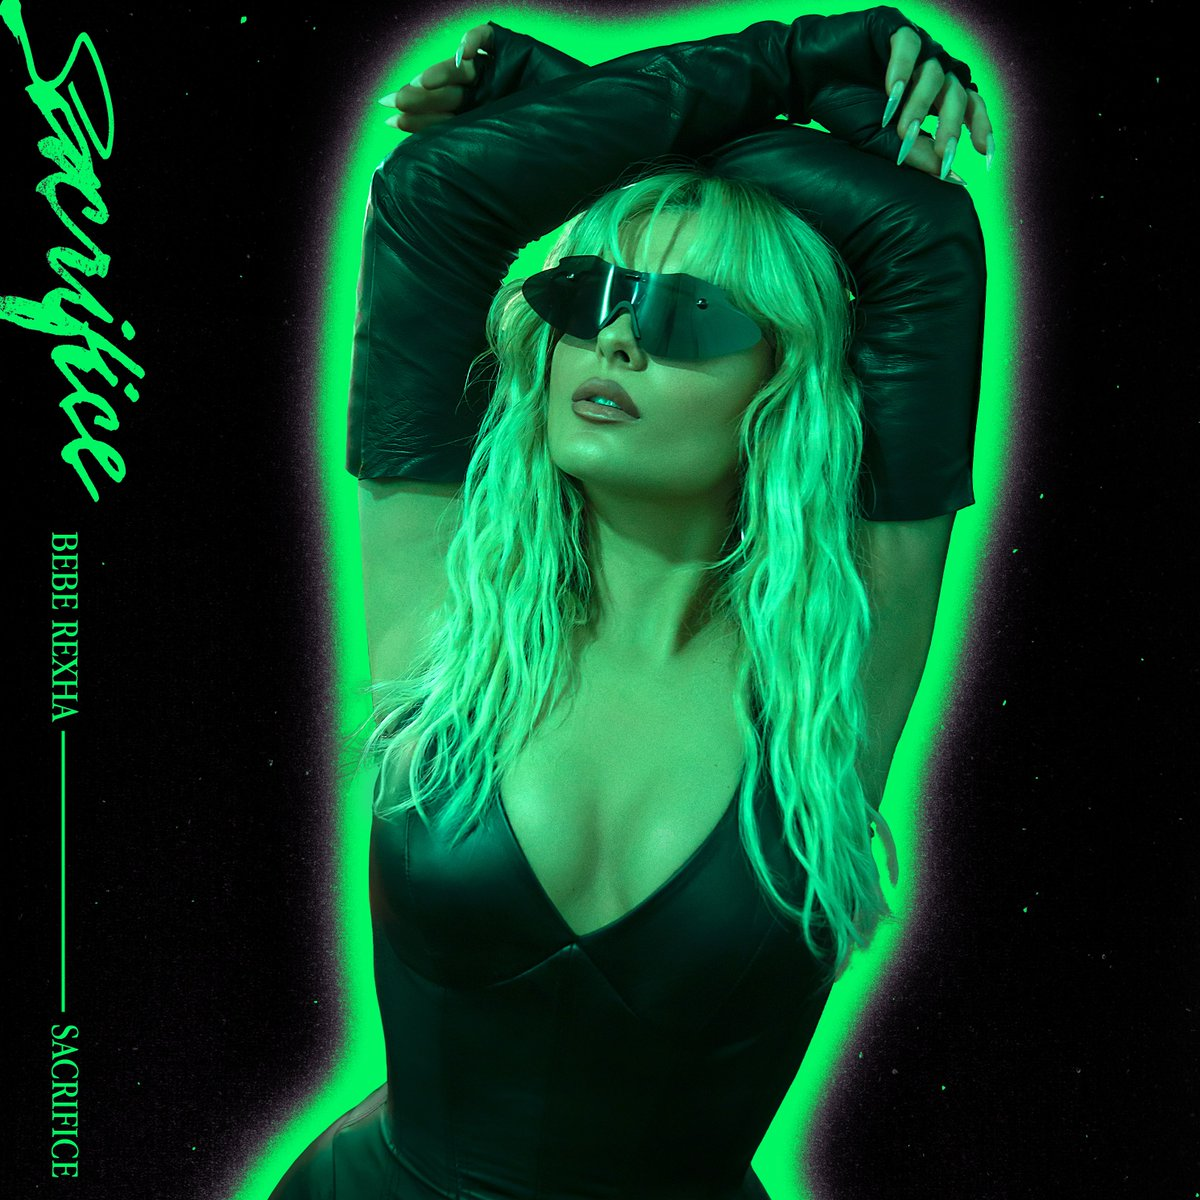 Replying to @BebeRexha: #SACRIFICE OUT THIS FRIDAY  Pre-save now: